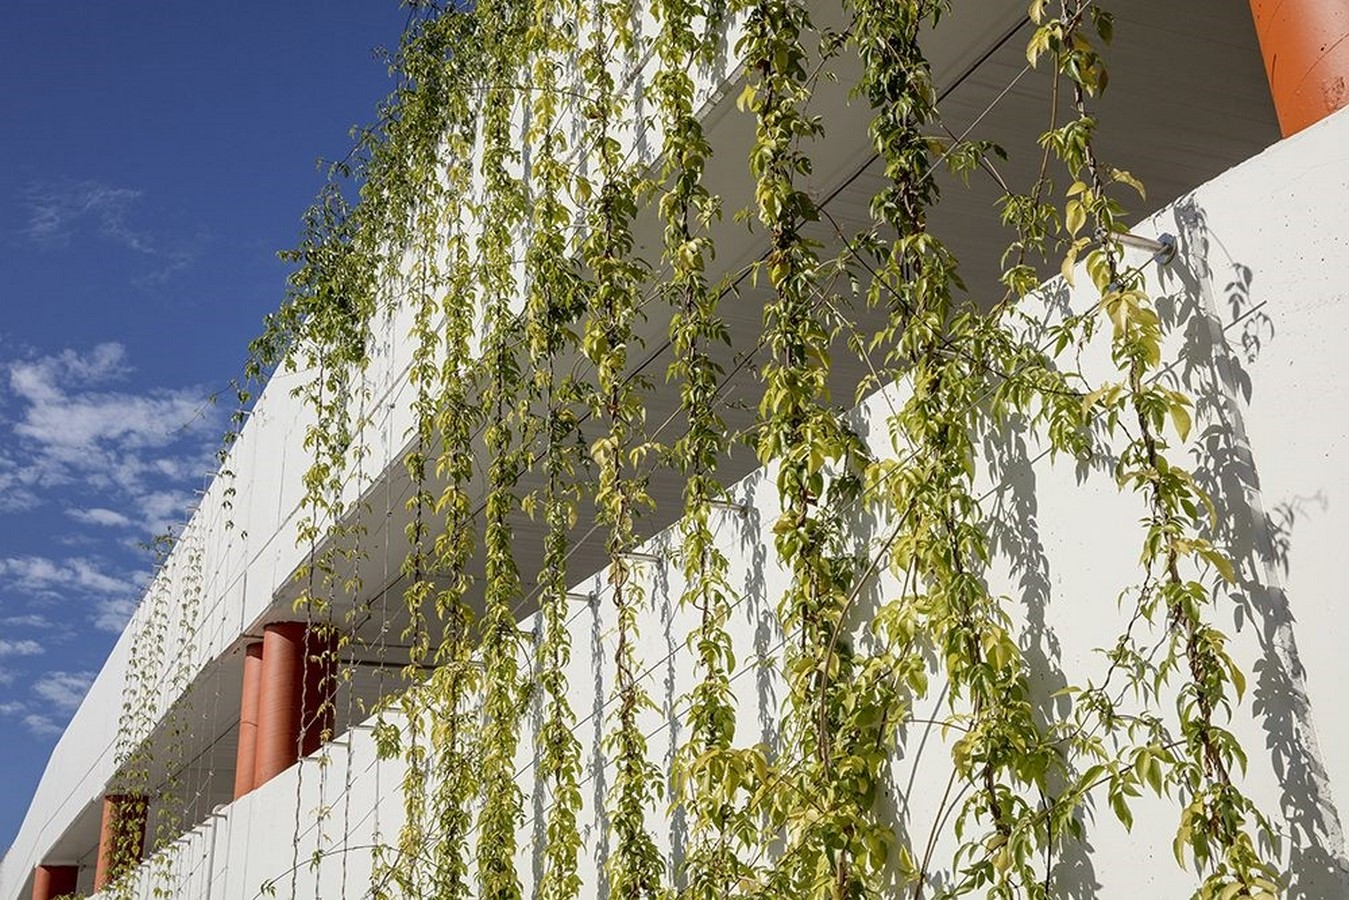 10 things you did not know about Green walls - Sheet10